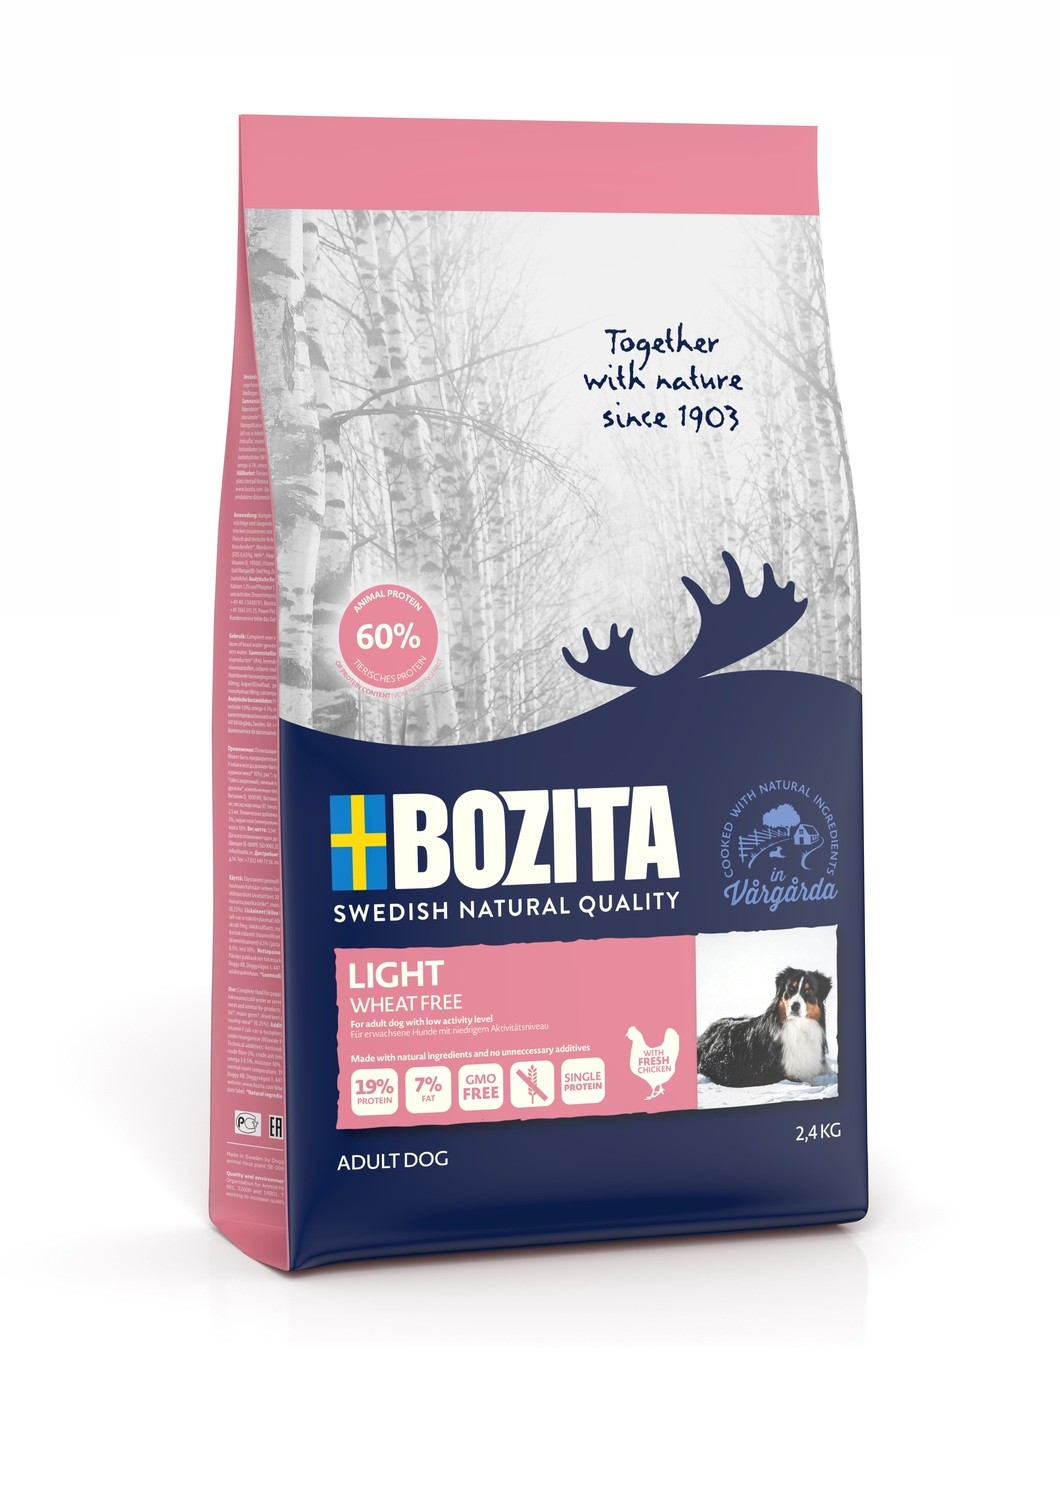 Bozita Light Wheat Free 2,4kg